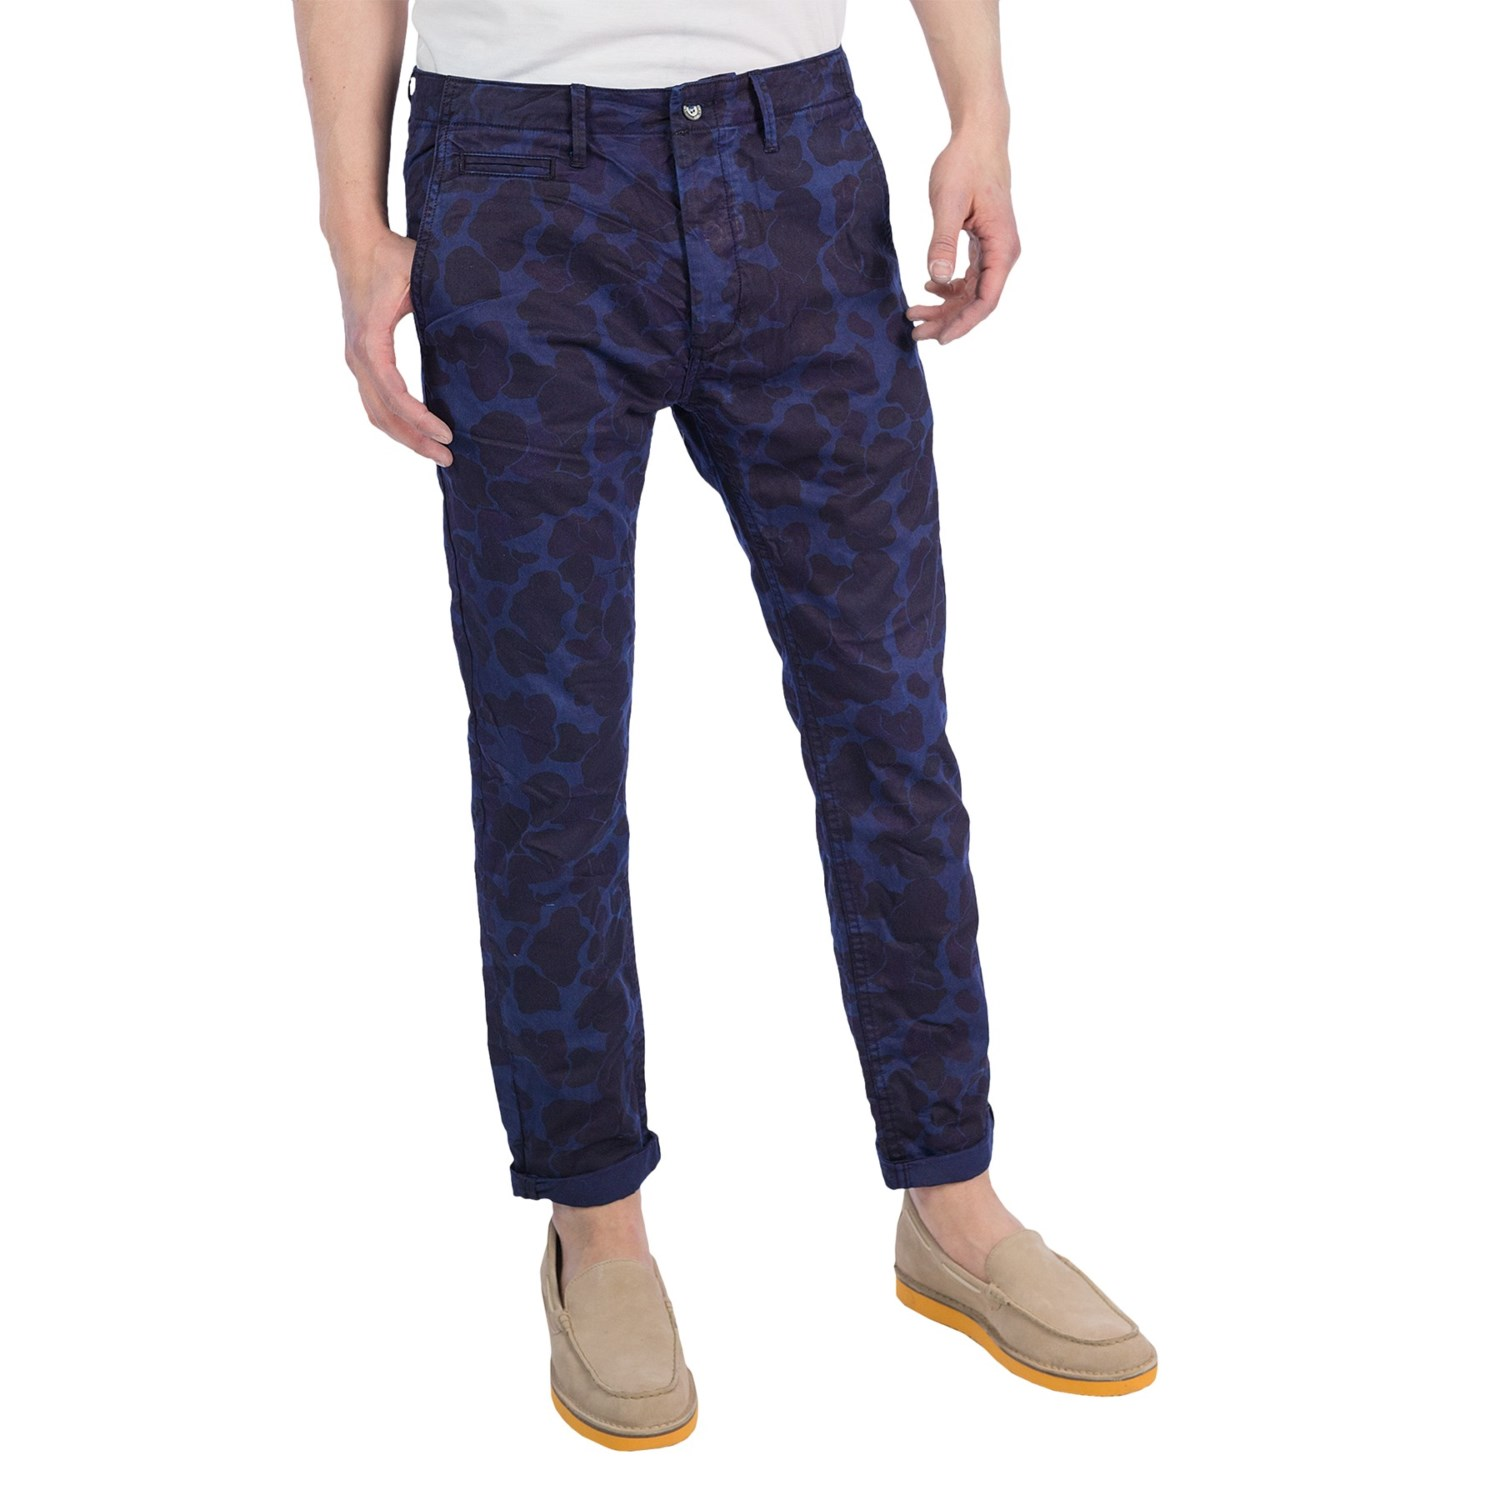 Burda from Burda patterns is a Men's Jeans sewing pattern Find this Pin and more on Jeanshosen - Schnitte & Ideen by Katrin. A: Slender jeans, five-pocket-style, narrow waist. Designed for fabrics with high stretch rate only. B: Very special chino, seams twisting towards the front.